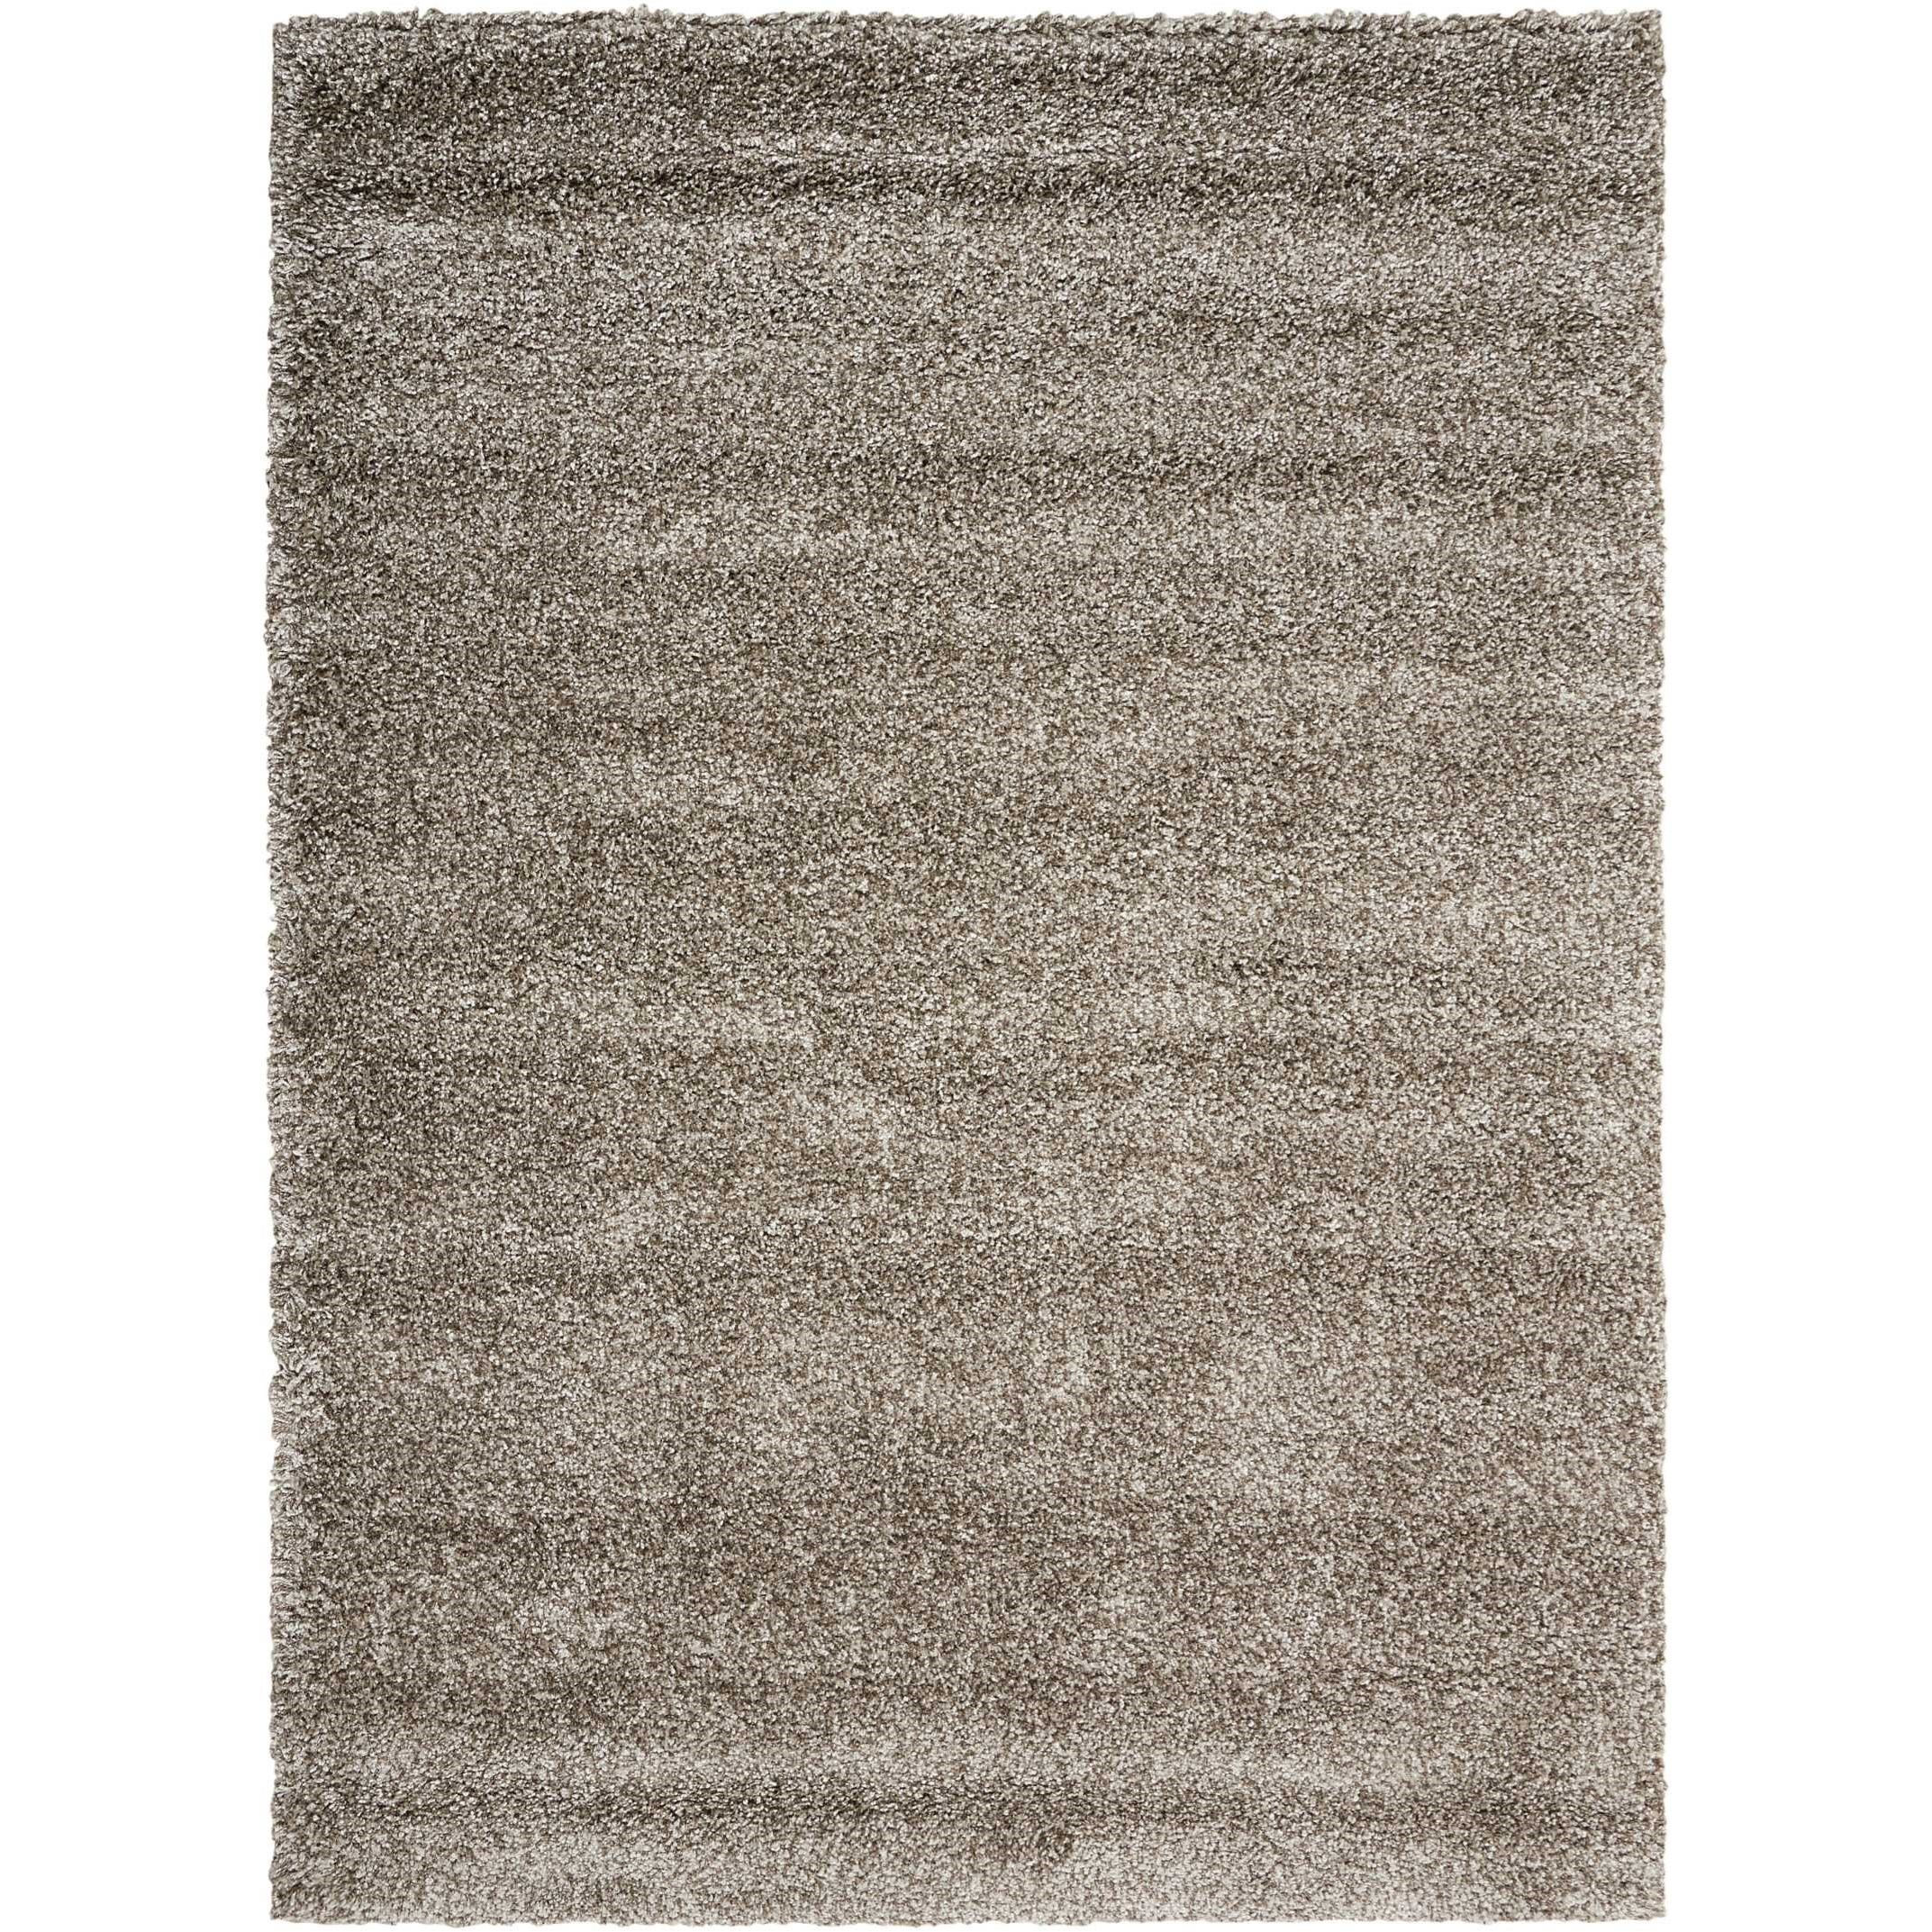 "Amore 5'3"" x 7'5"" Stone Rectangle Rug by Nourison at Sprintz Furniture"